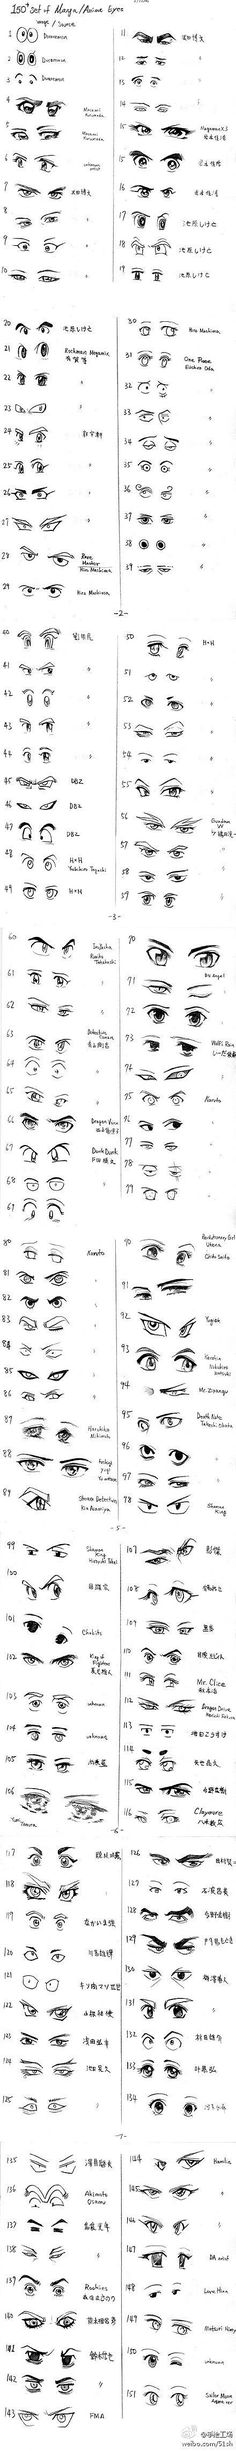 I don't really draw Anime anymore like I used to, but this is a great guide for Anime/Manga eyes!: